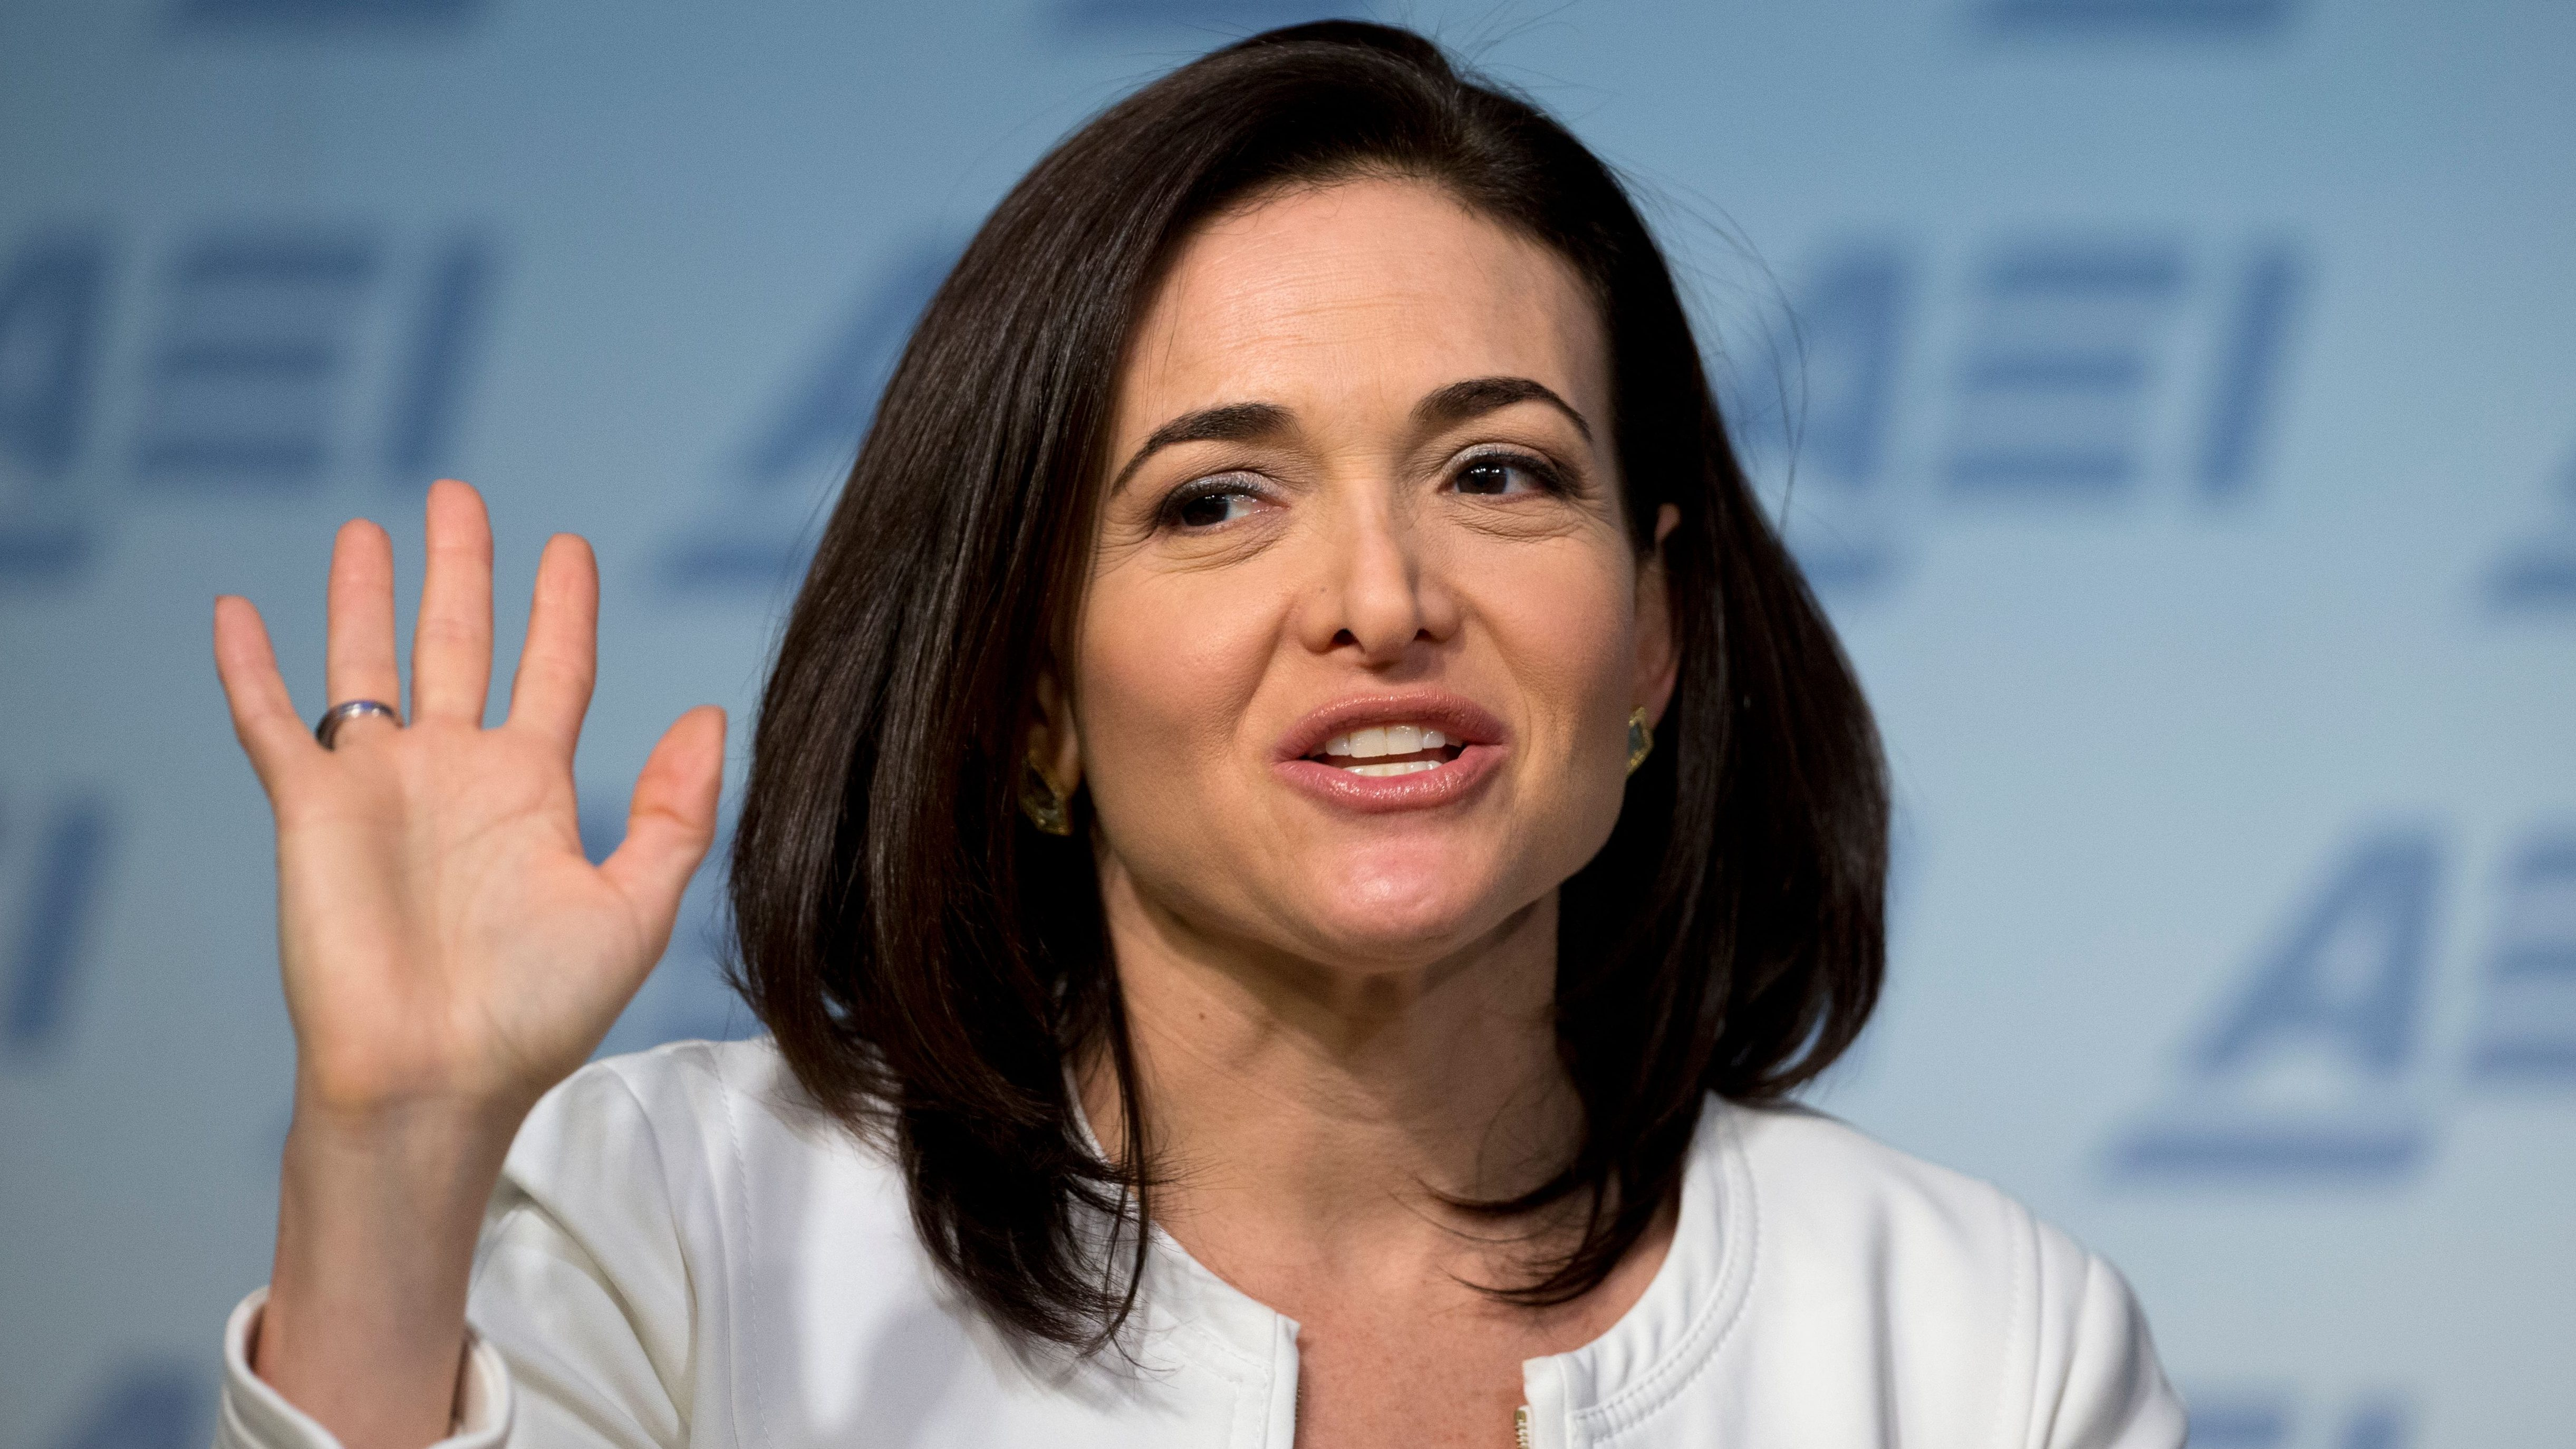 Why are we surprised to meet this Sheryl Sandberg?